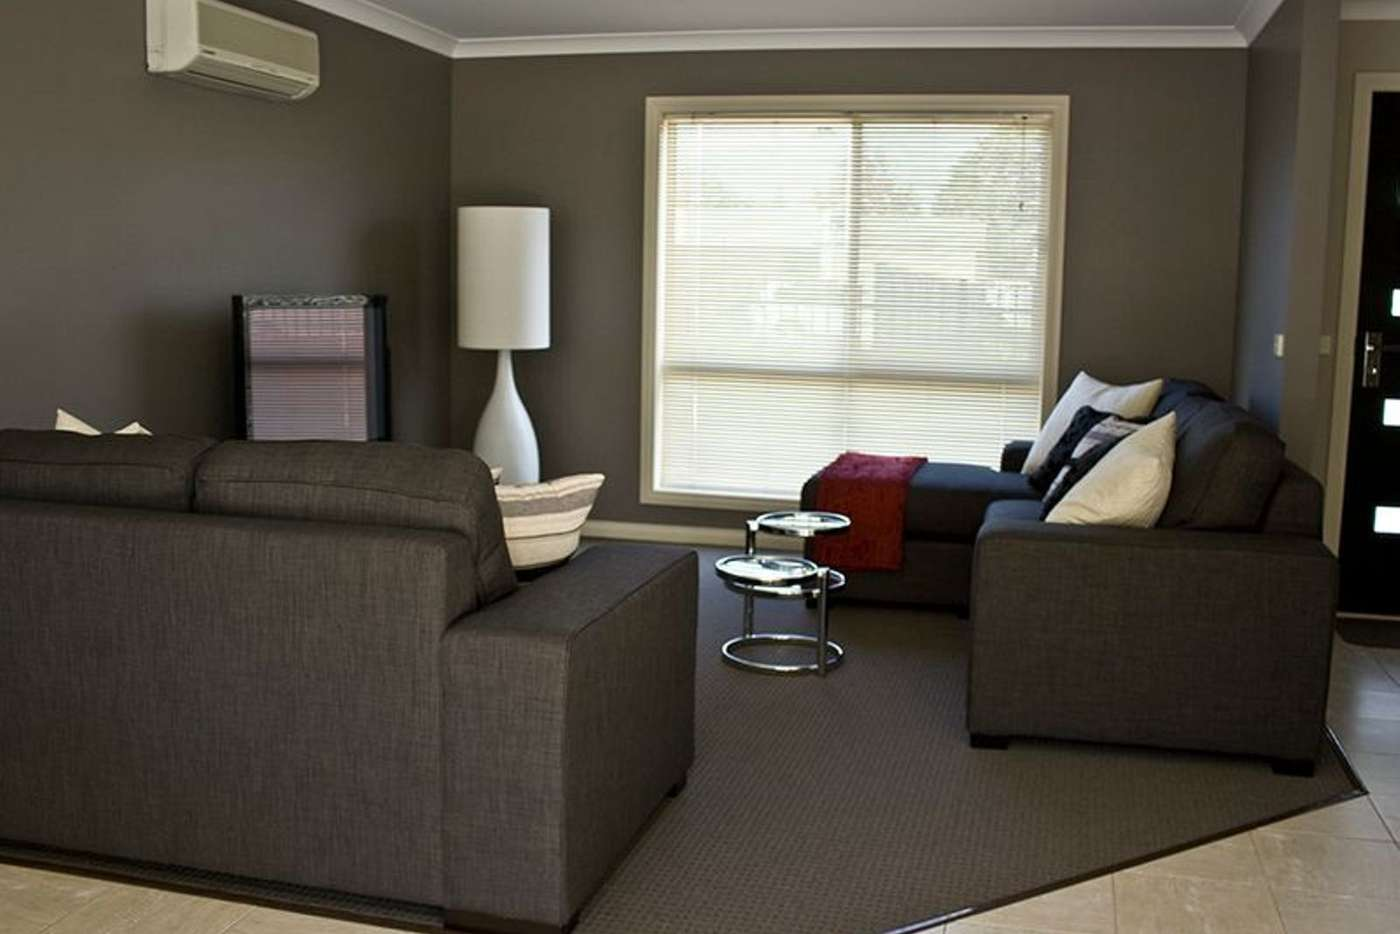 Sixth view of Homely house listing, 15 Uley Street, Bendigo VIC 3550